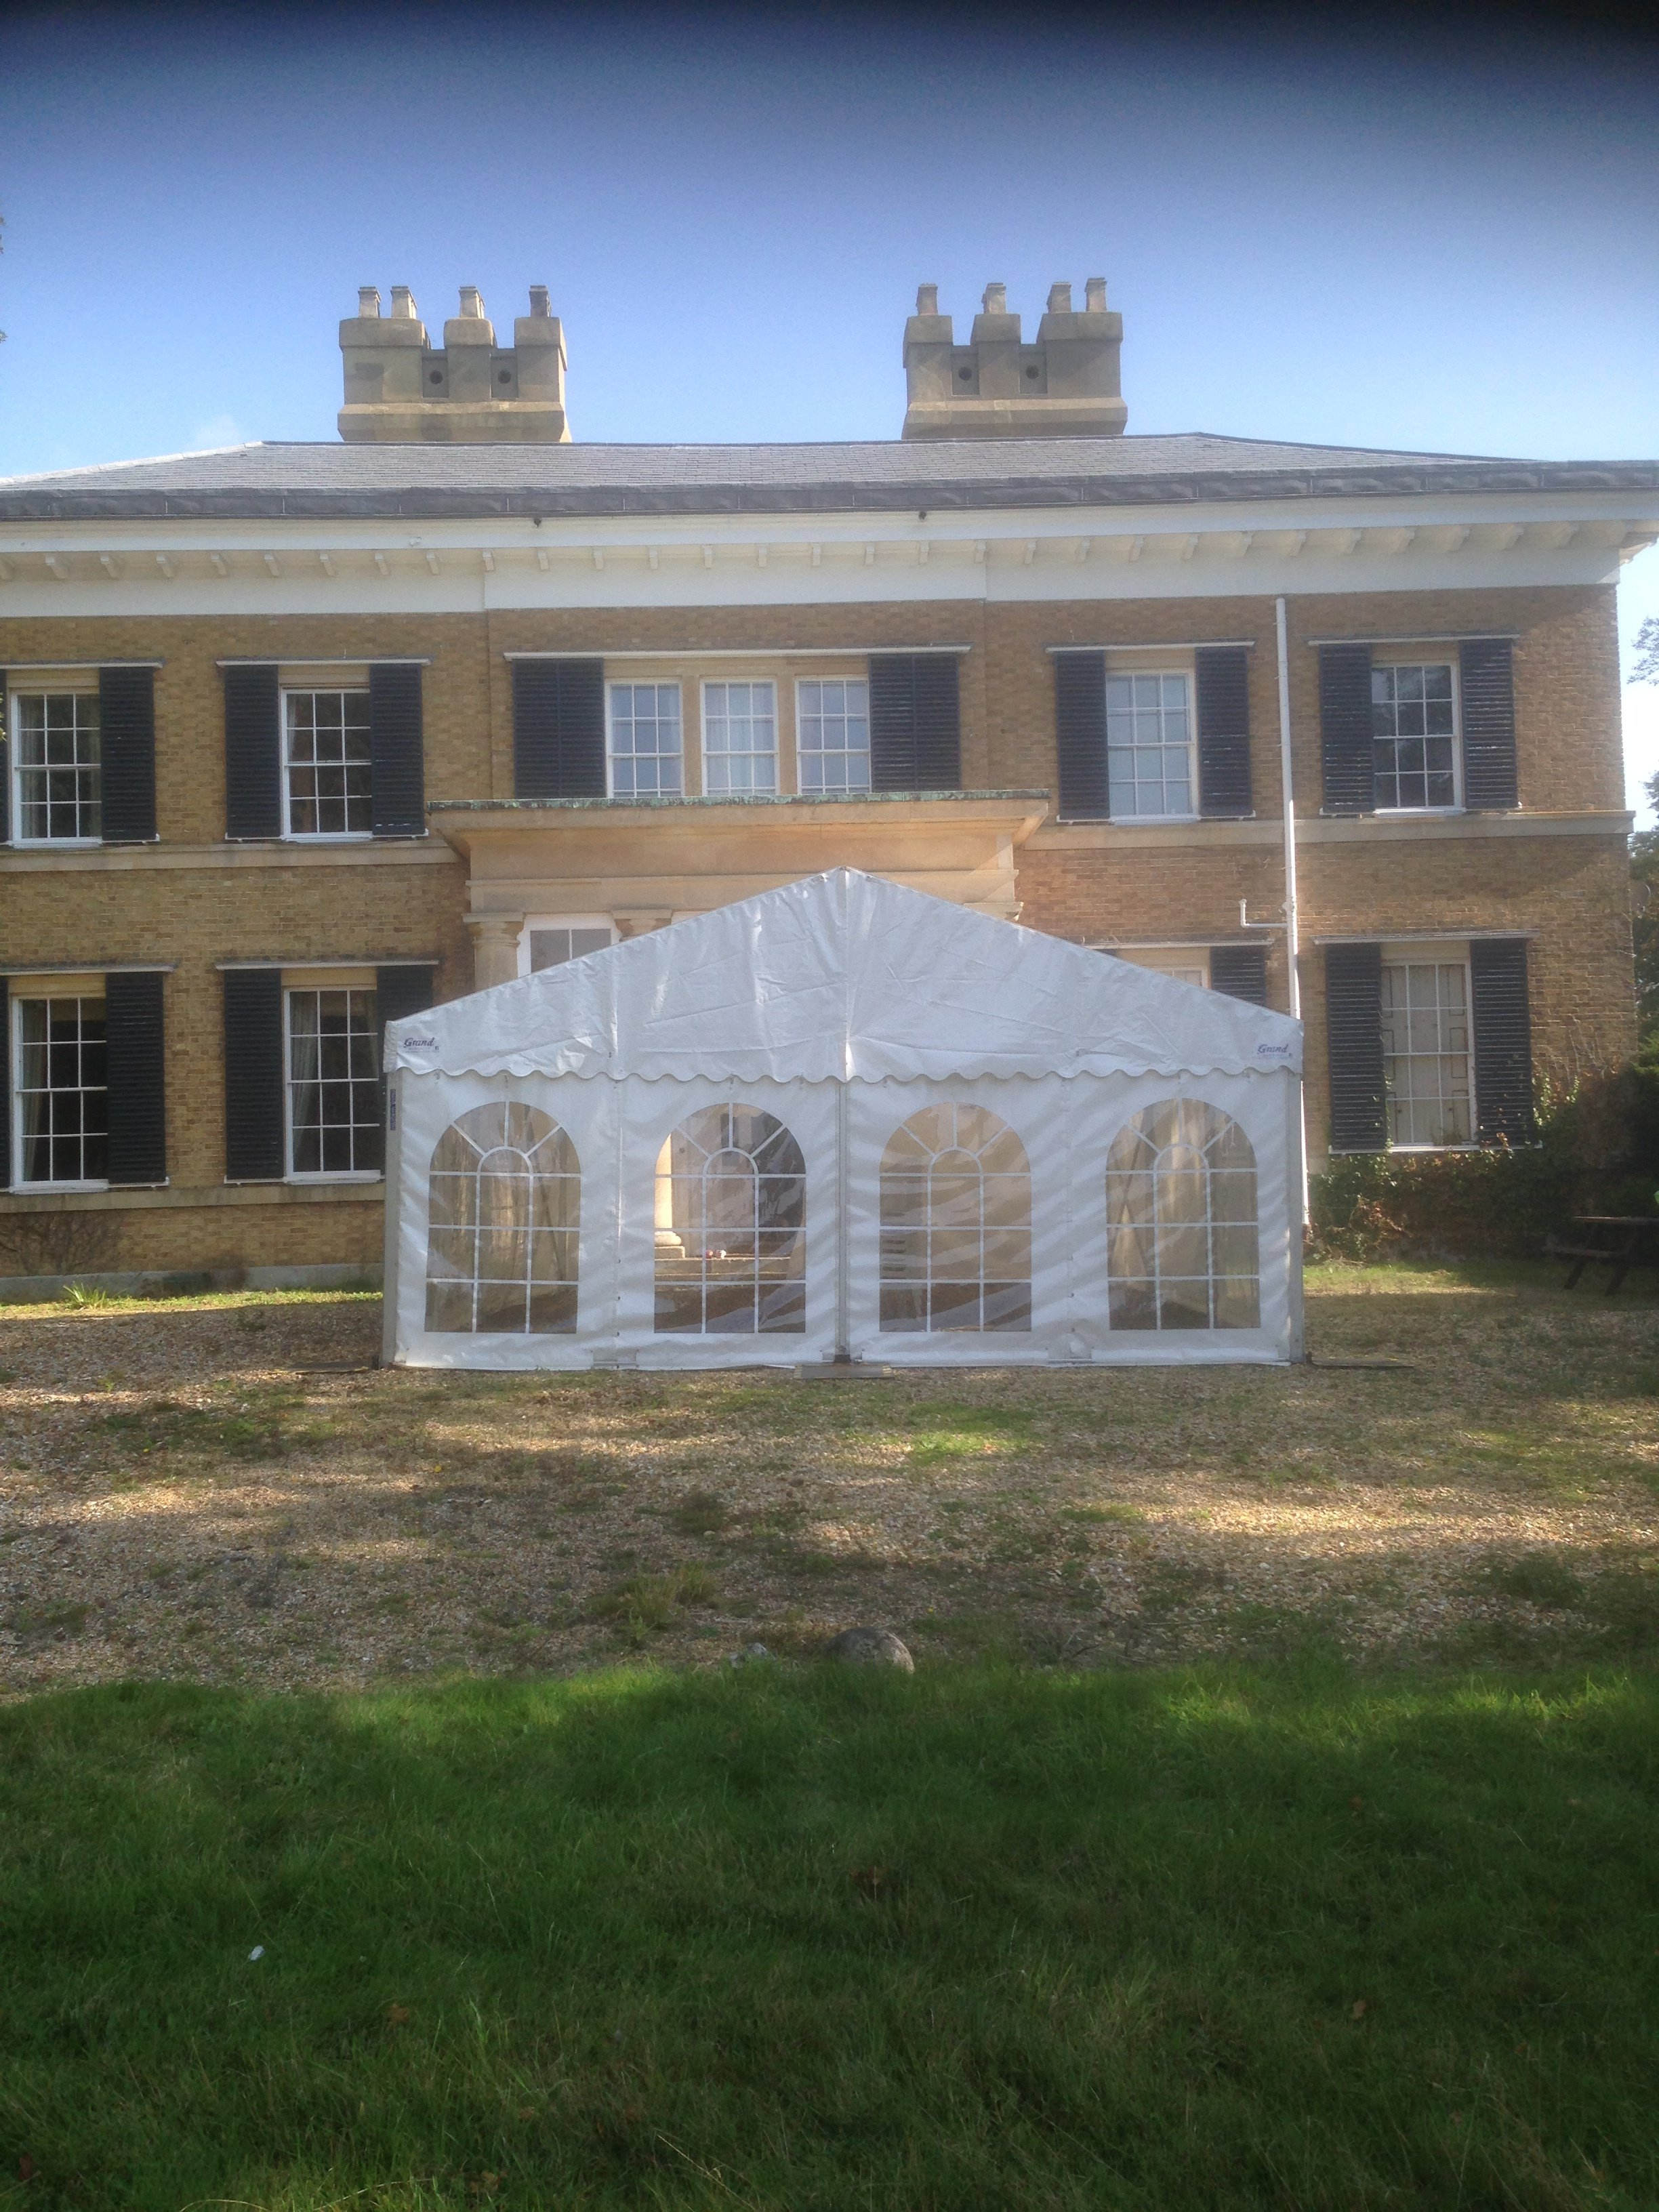 Covered marquee